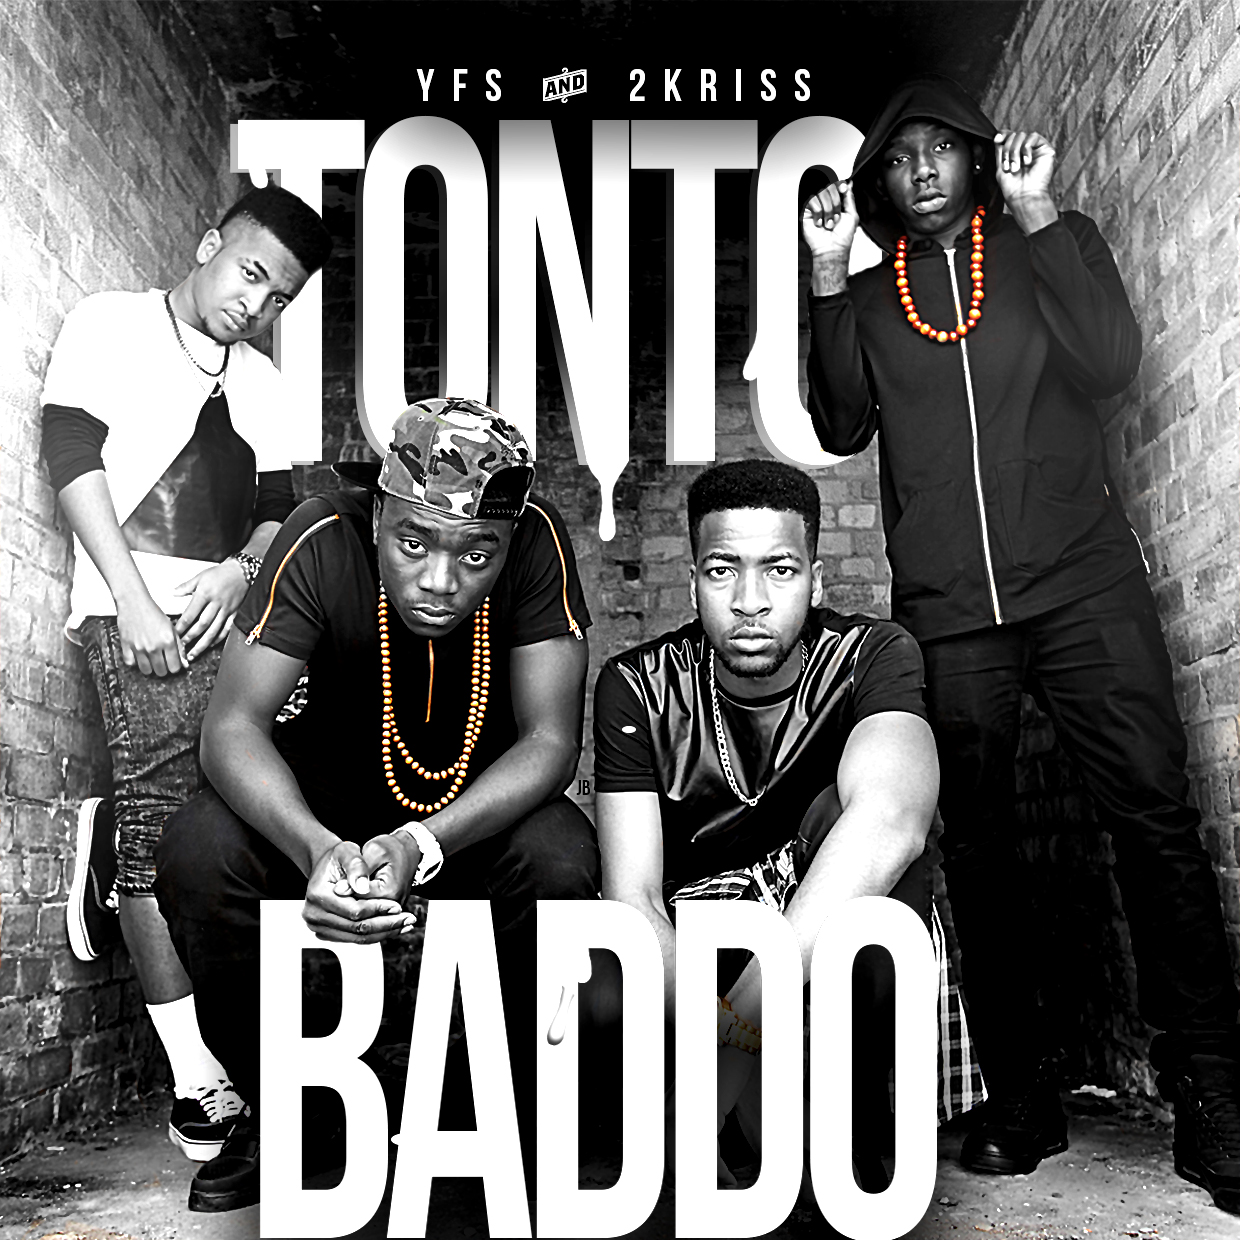 2Kriss BaddoTonto Artwork